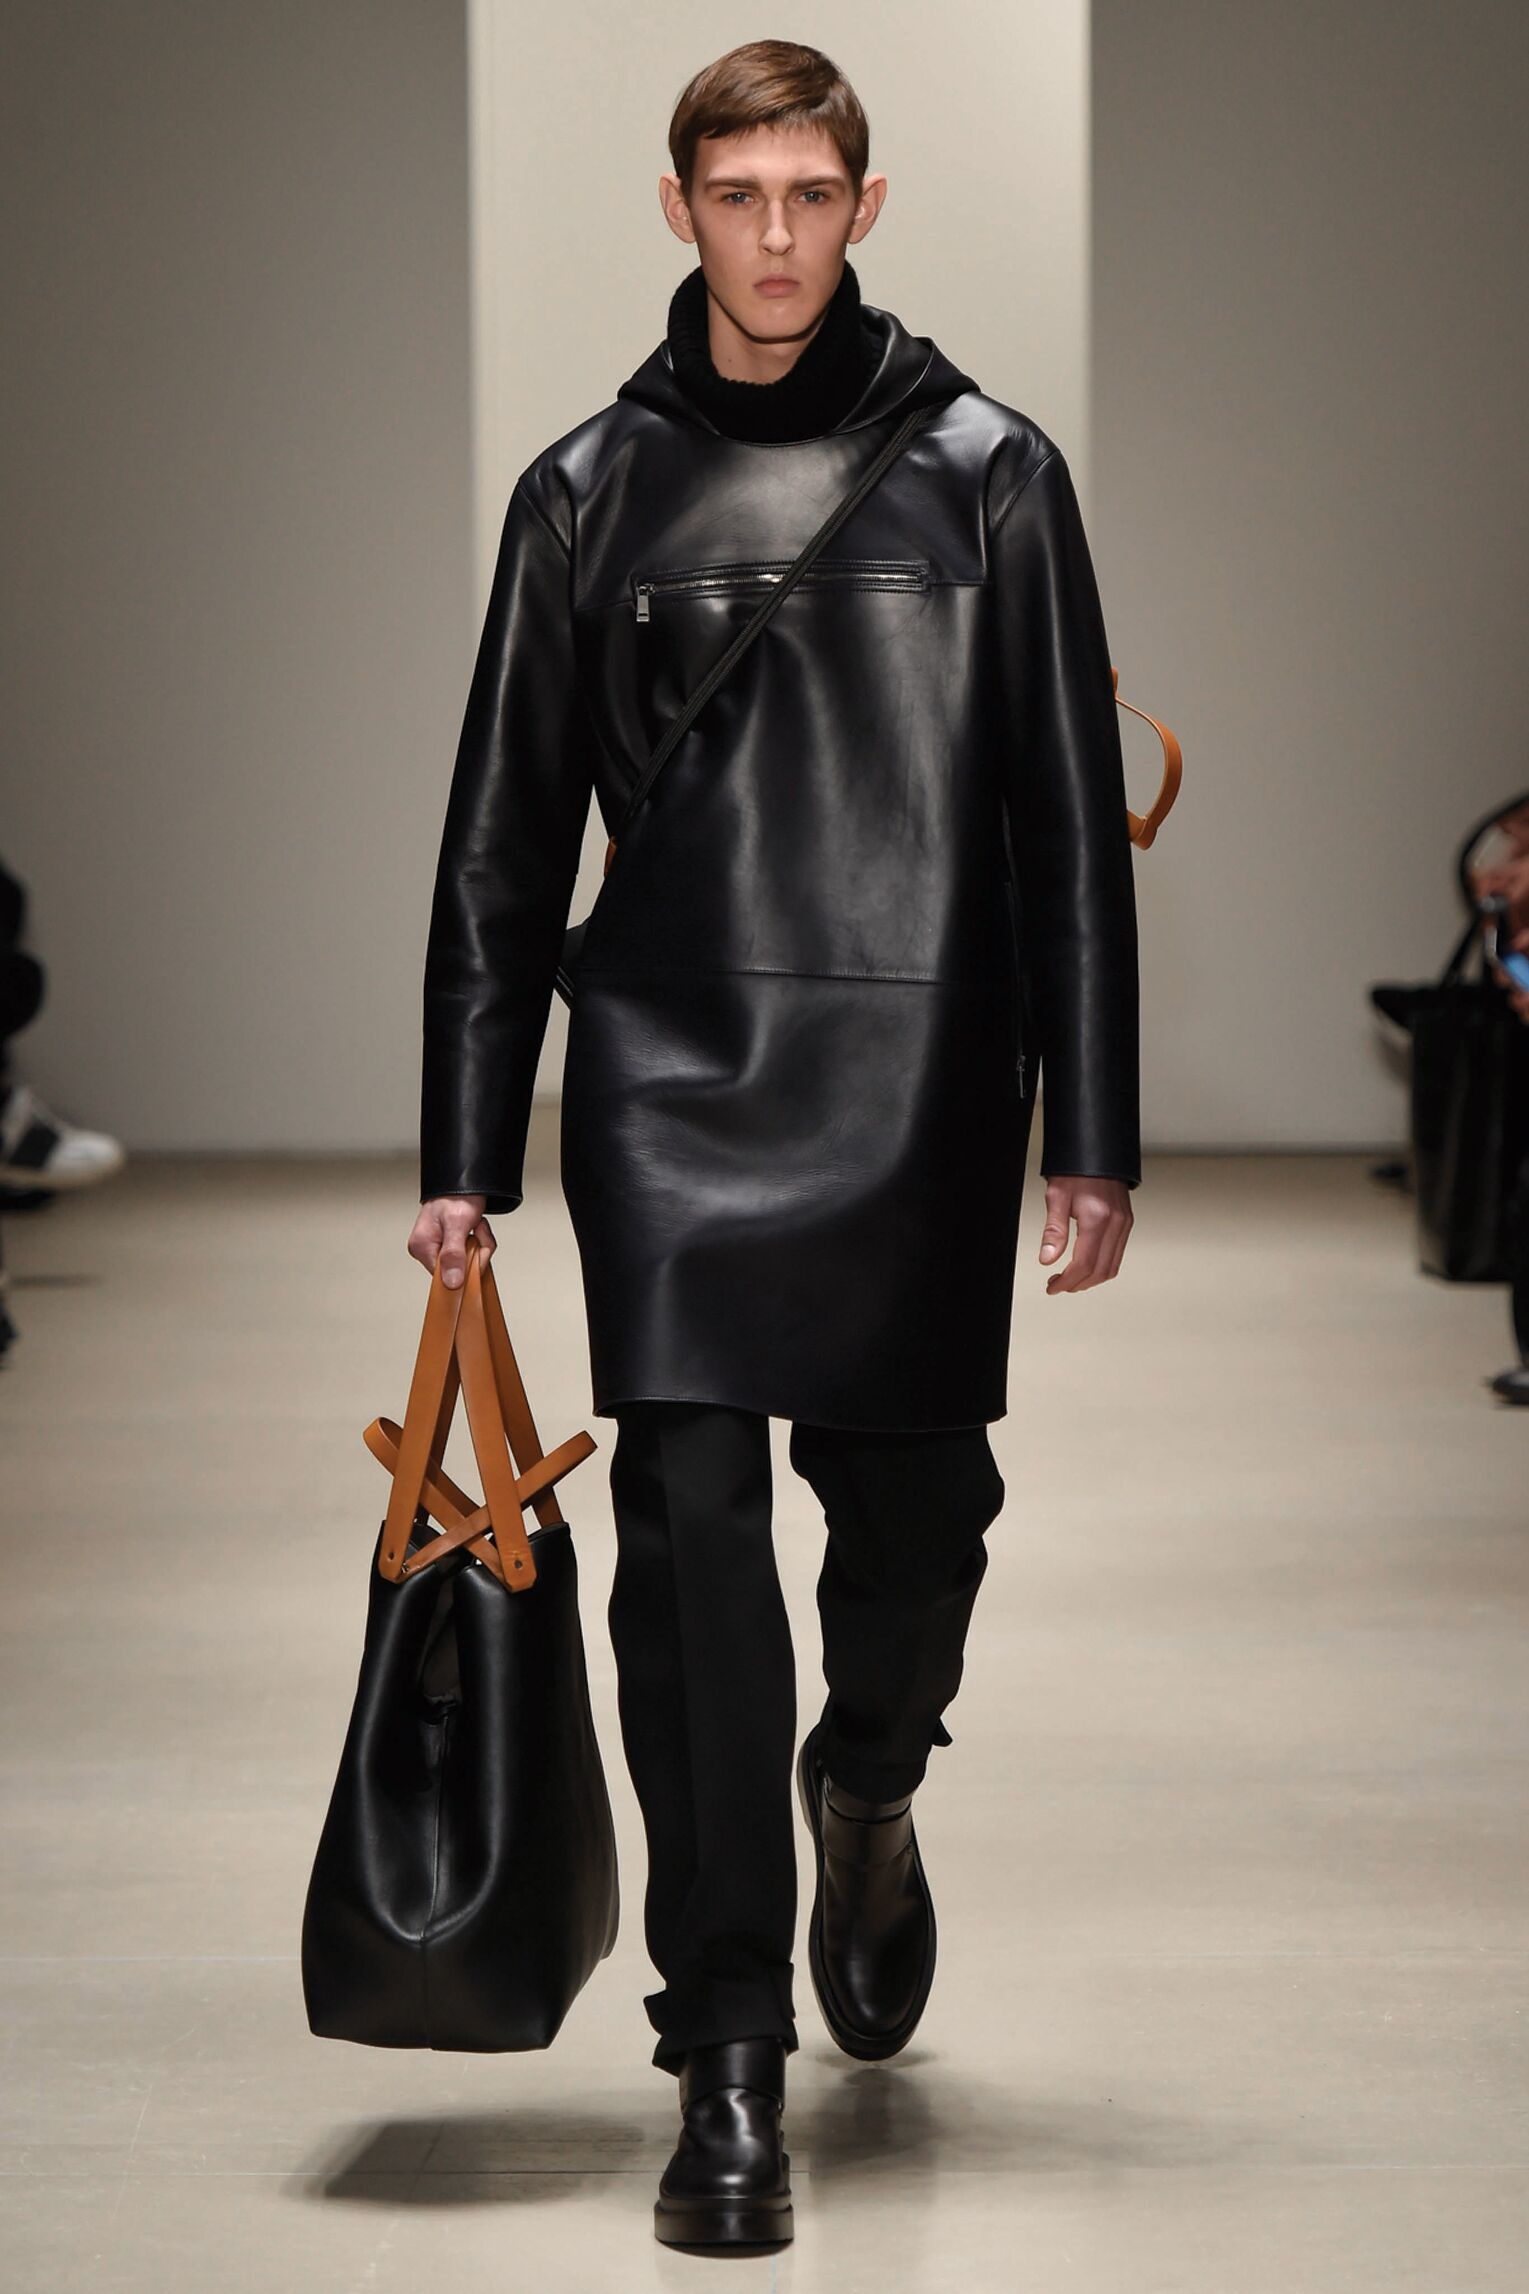 Winter Suit Trends 2015 Man Jil Sander